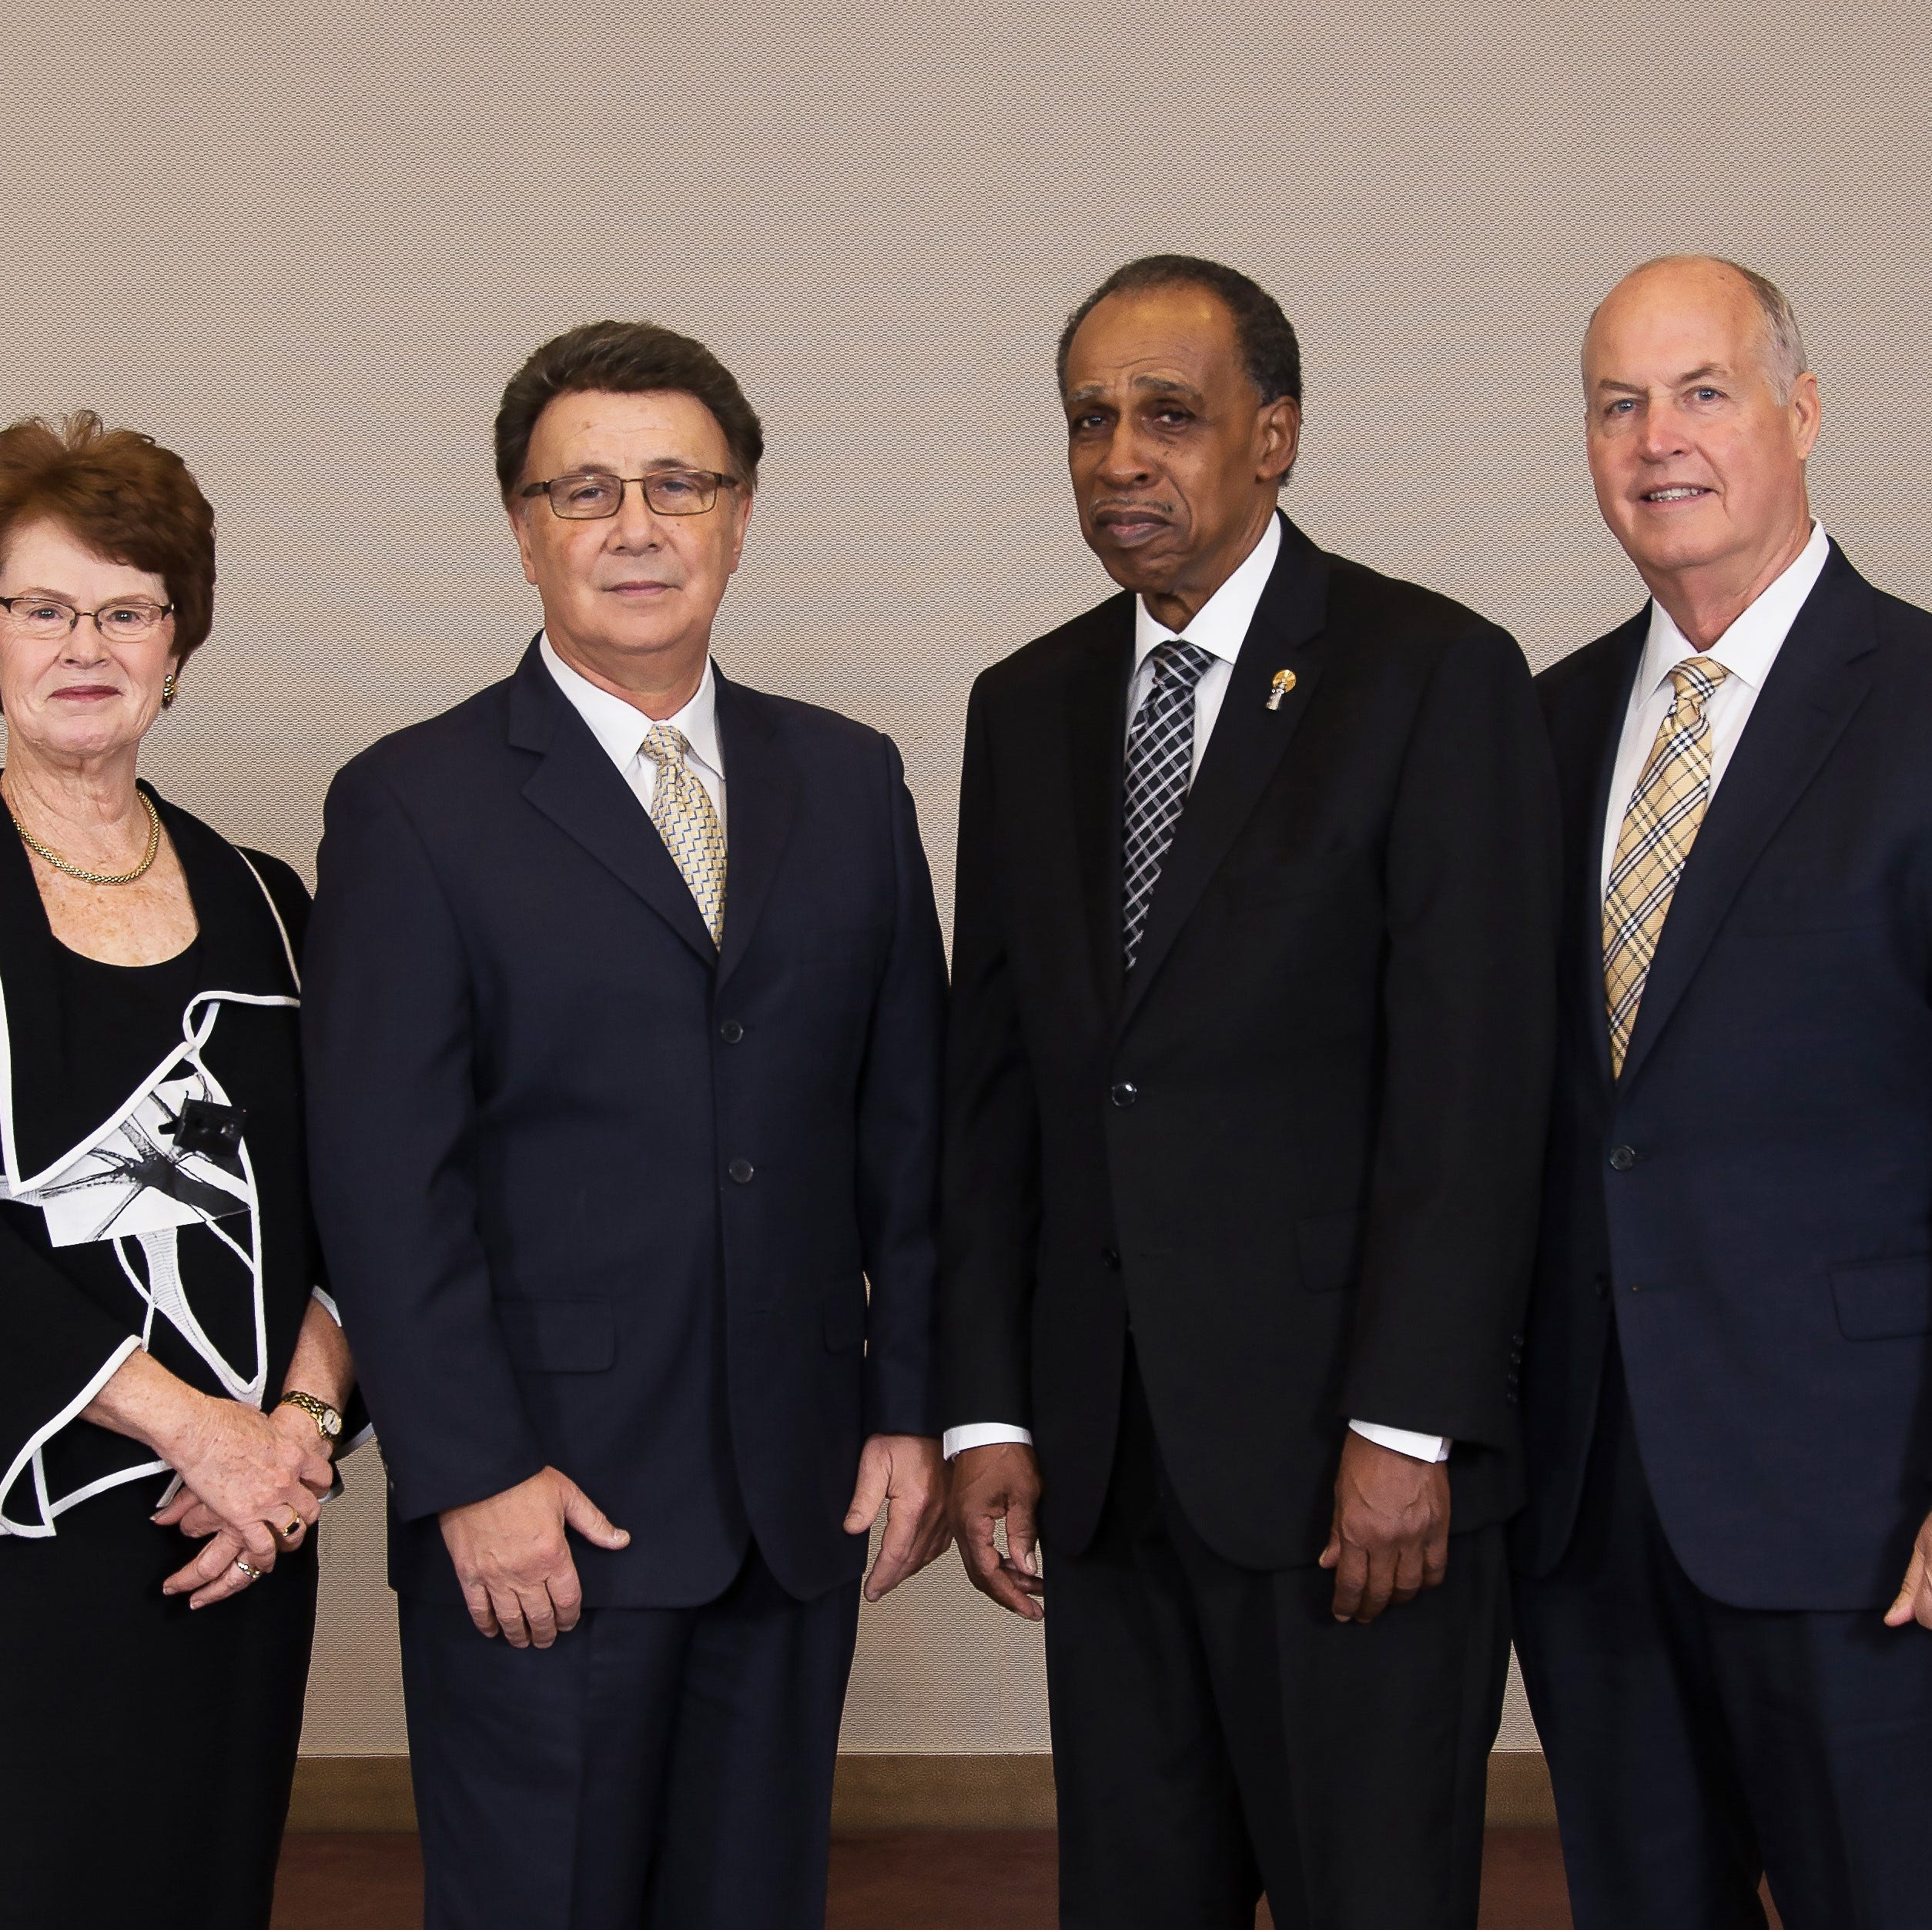 Cumberland County College's Foundation Board elects officers